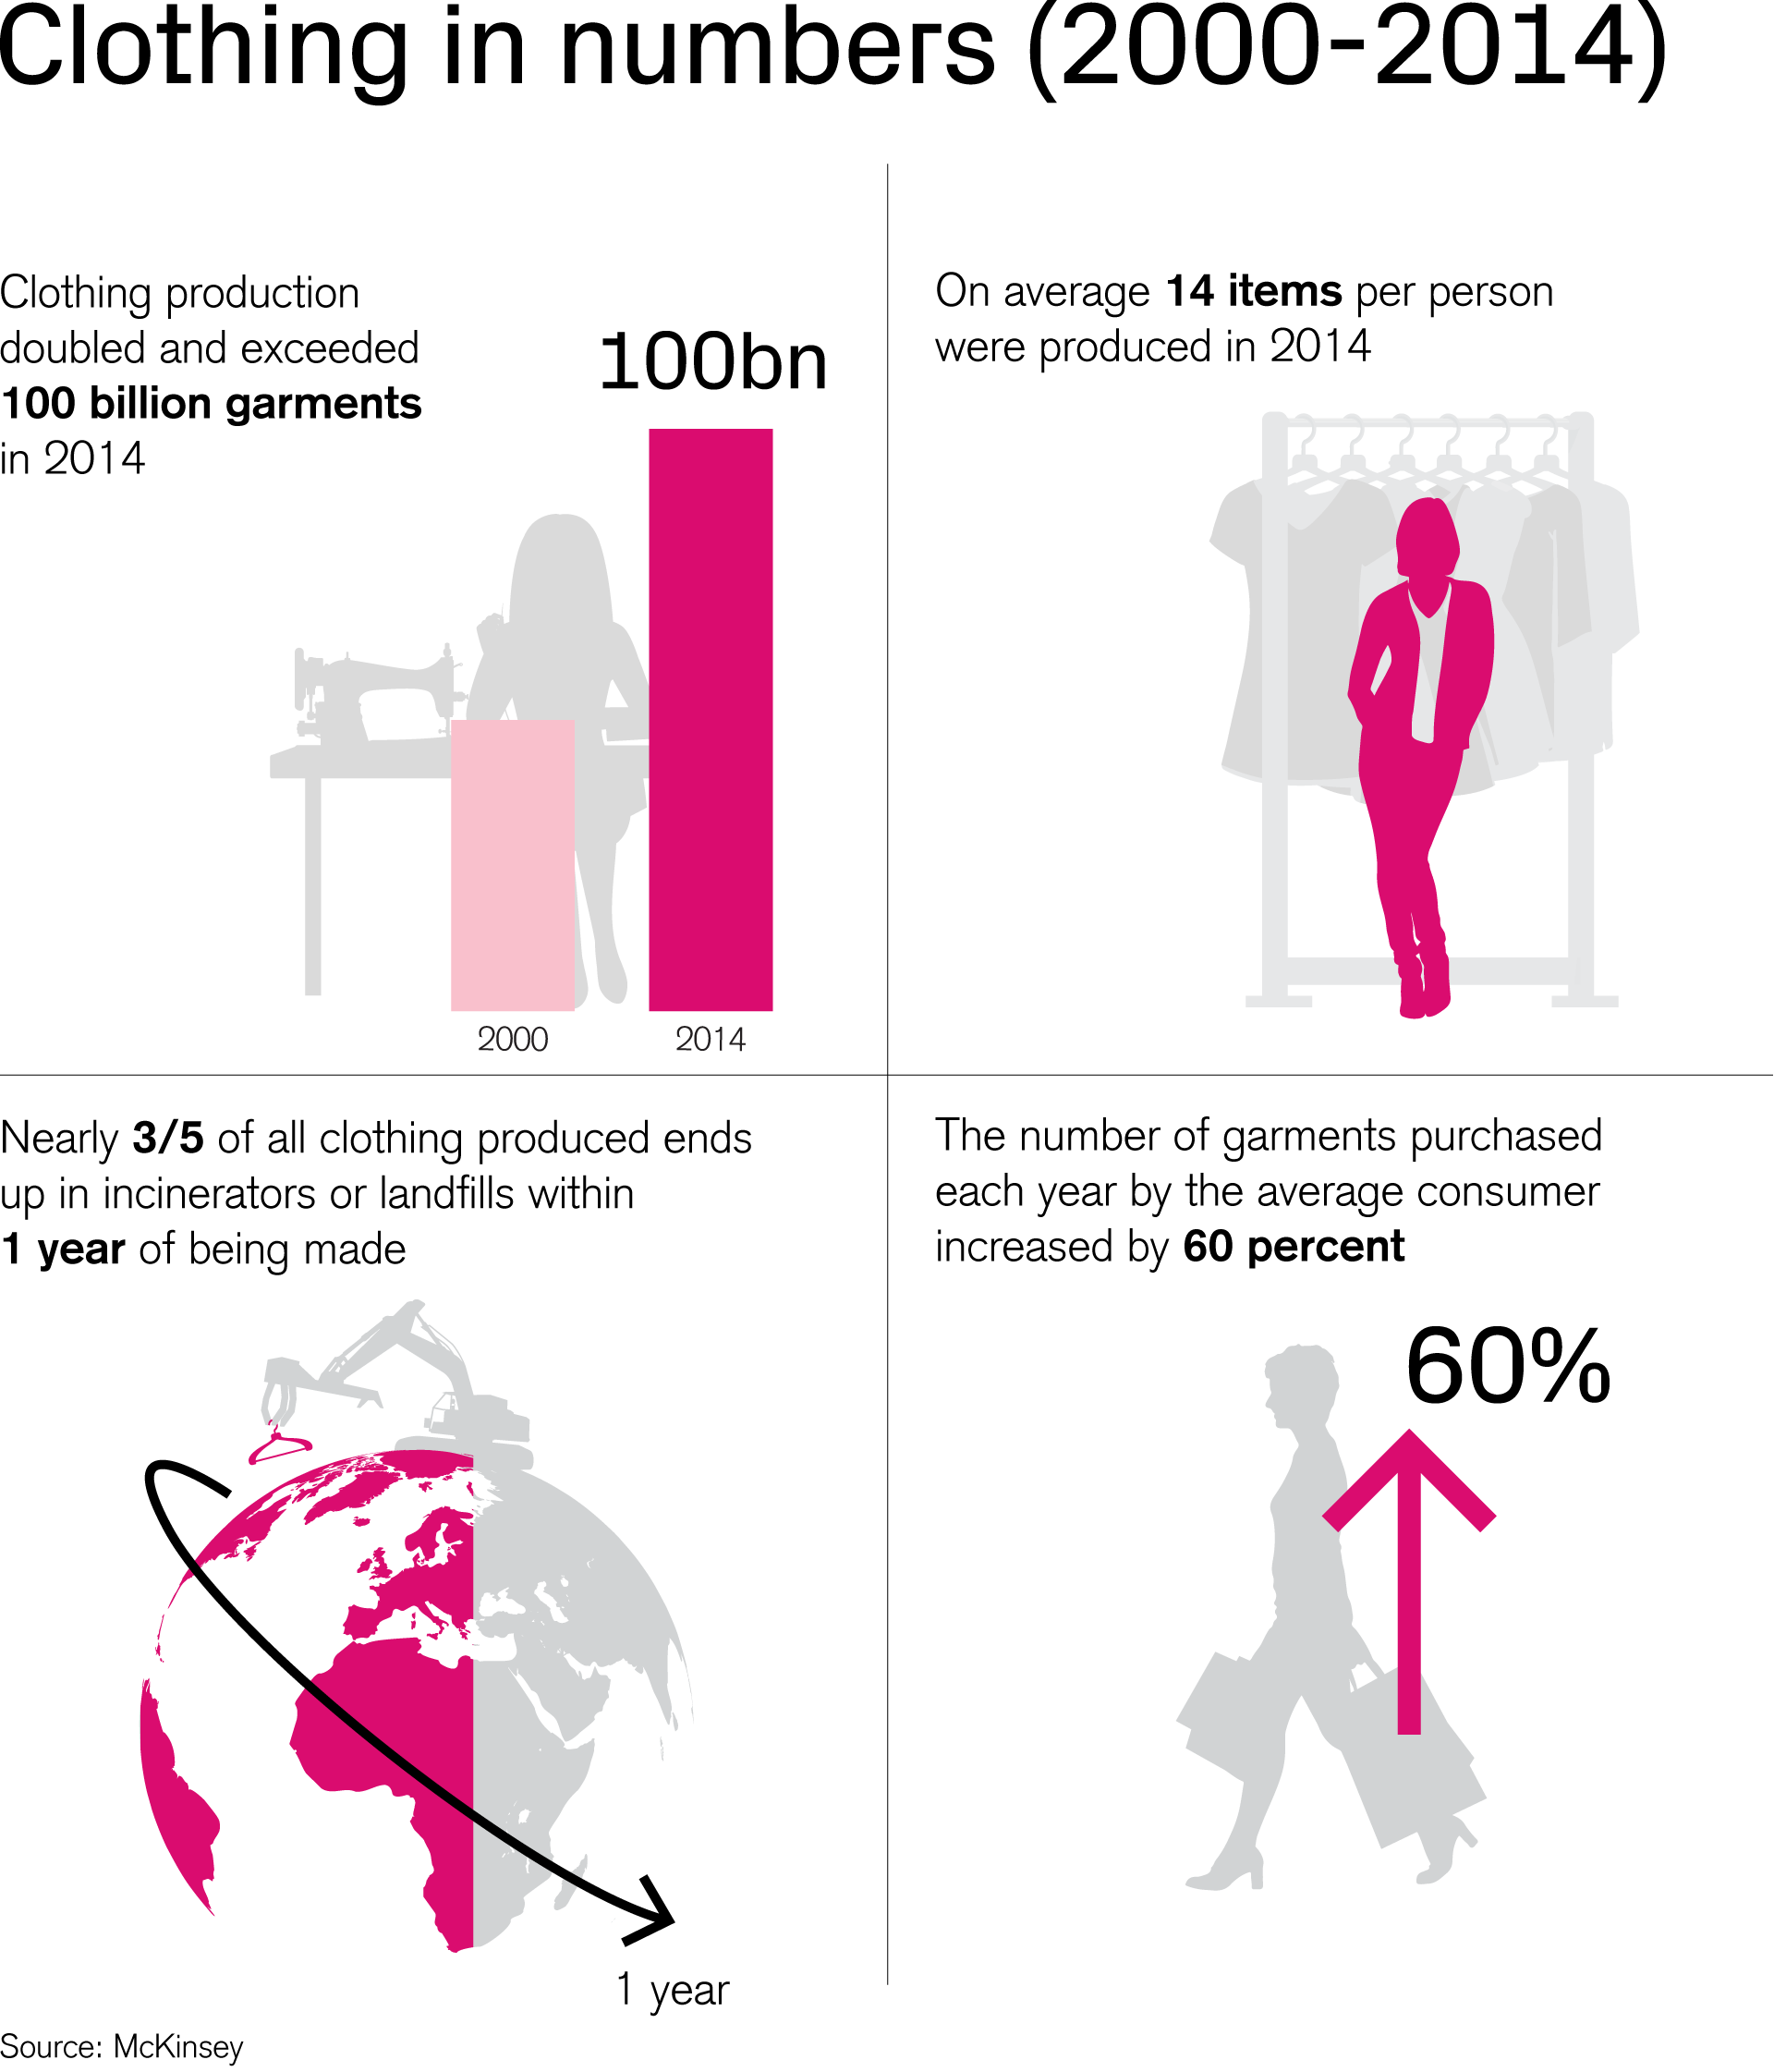 Clothing in numbers (2000-2014)